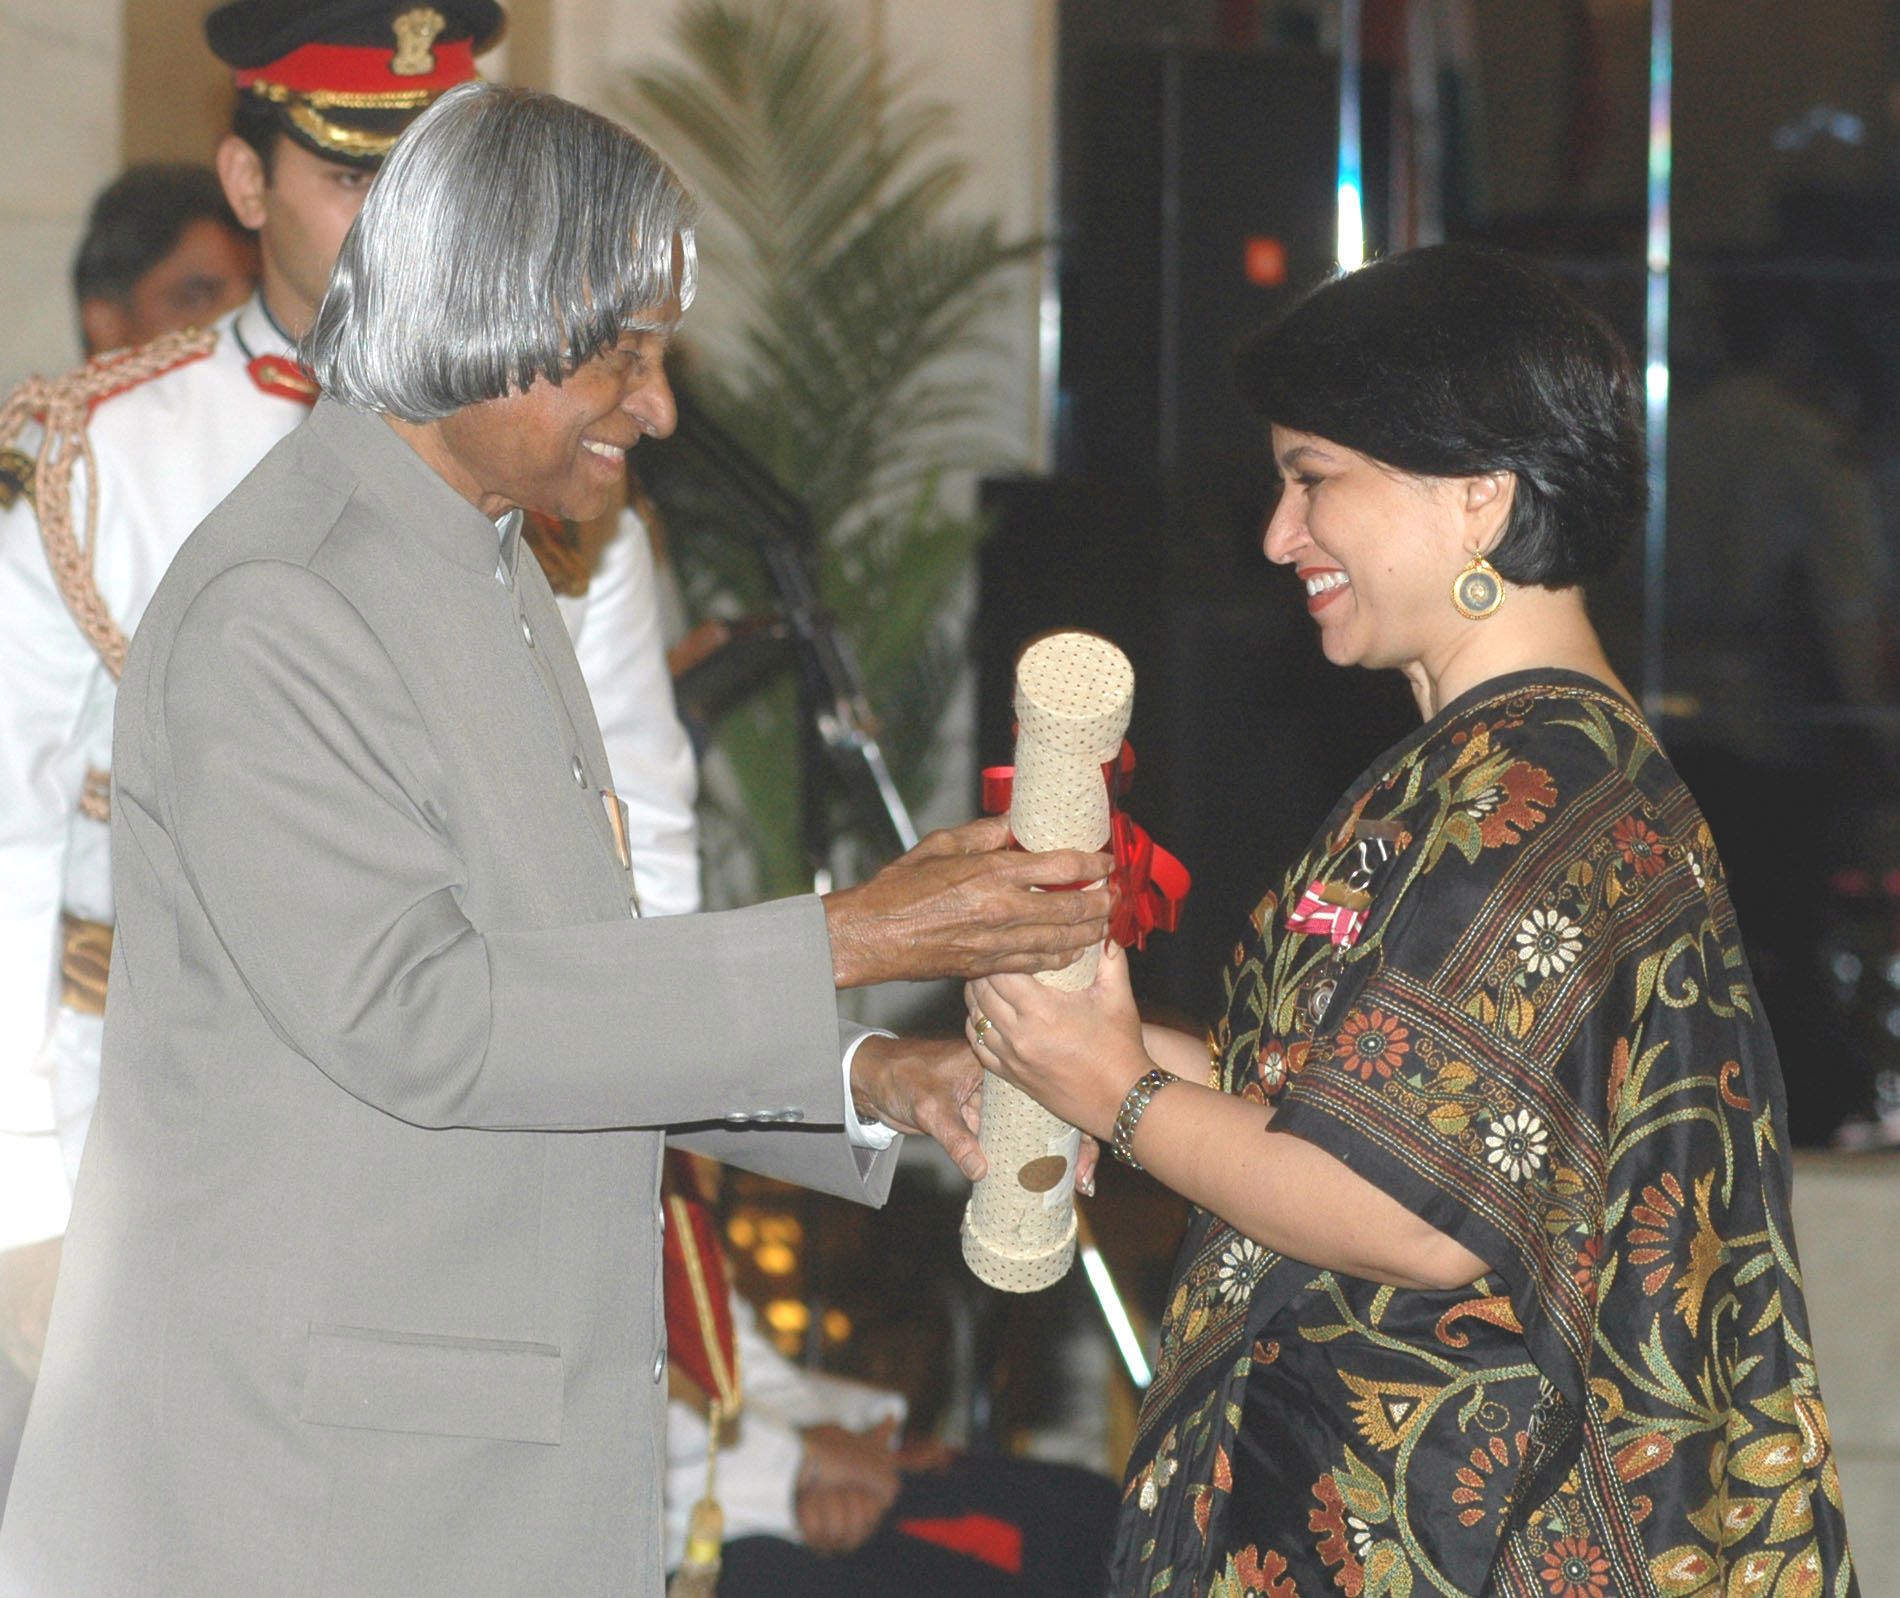 The President, Dr. A.P.J. Abdul Kalam presenting the Padma Shri Award 2006 to Ms. Sucheta Dalal, a well-known business journalist, in New Delhi on March 20, 2006.